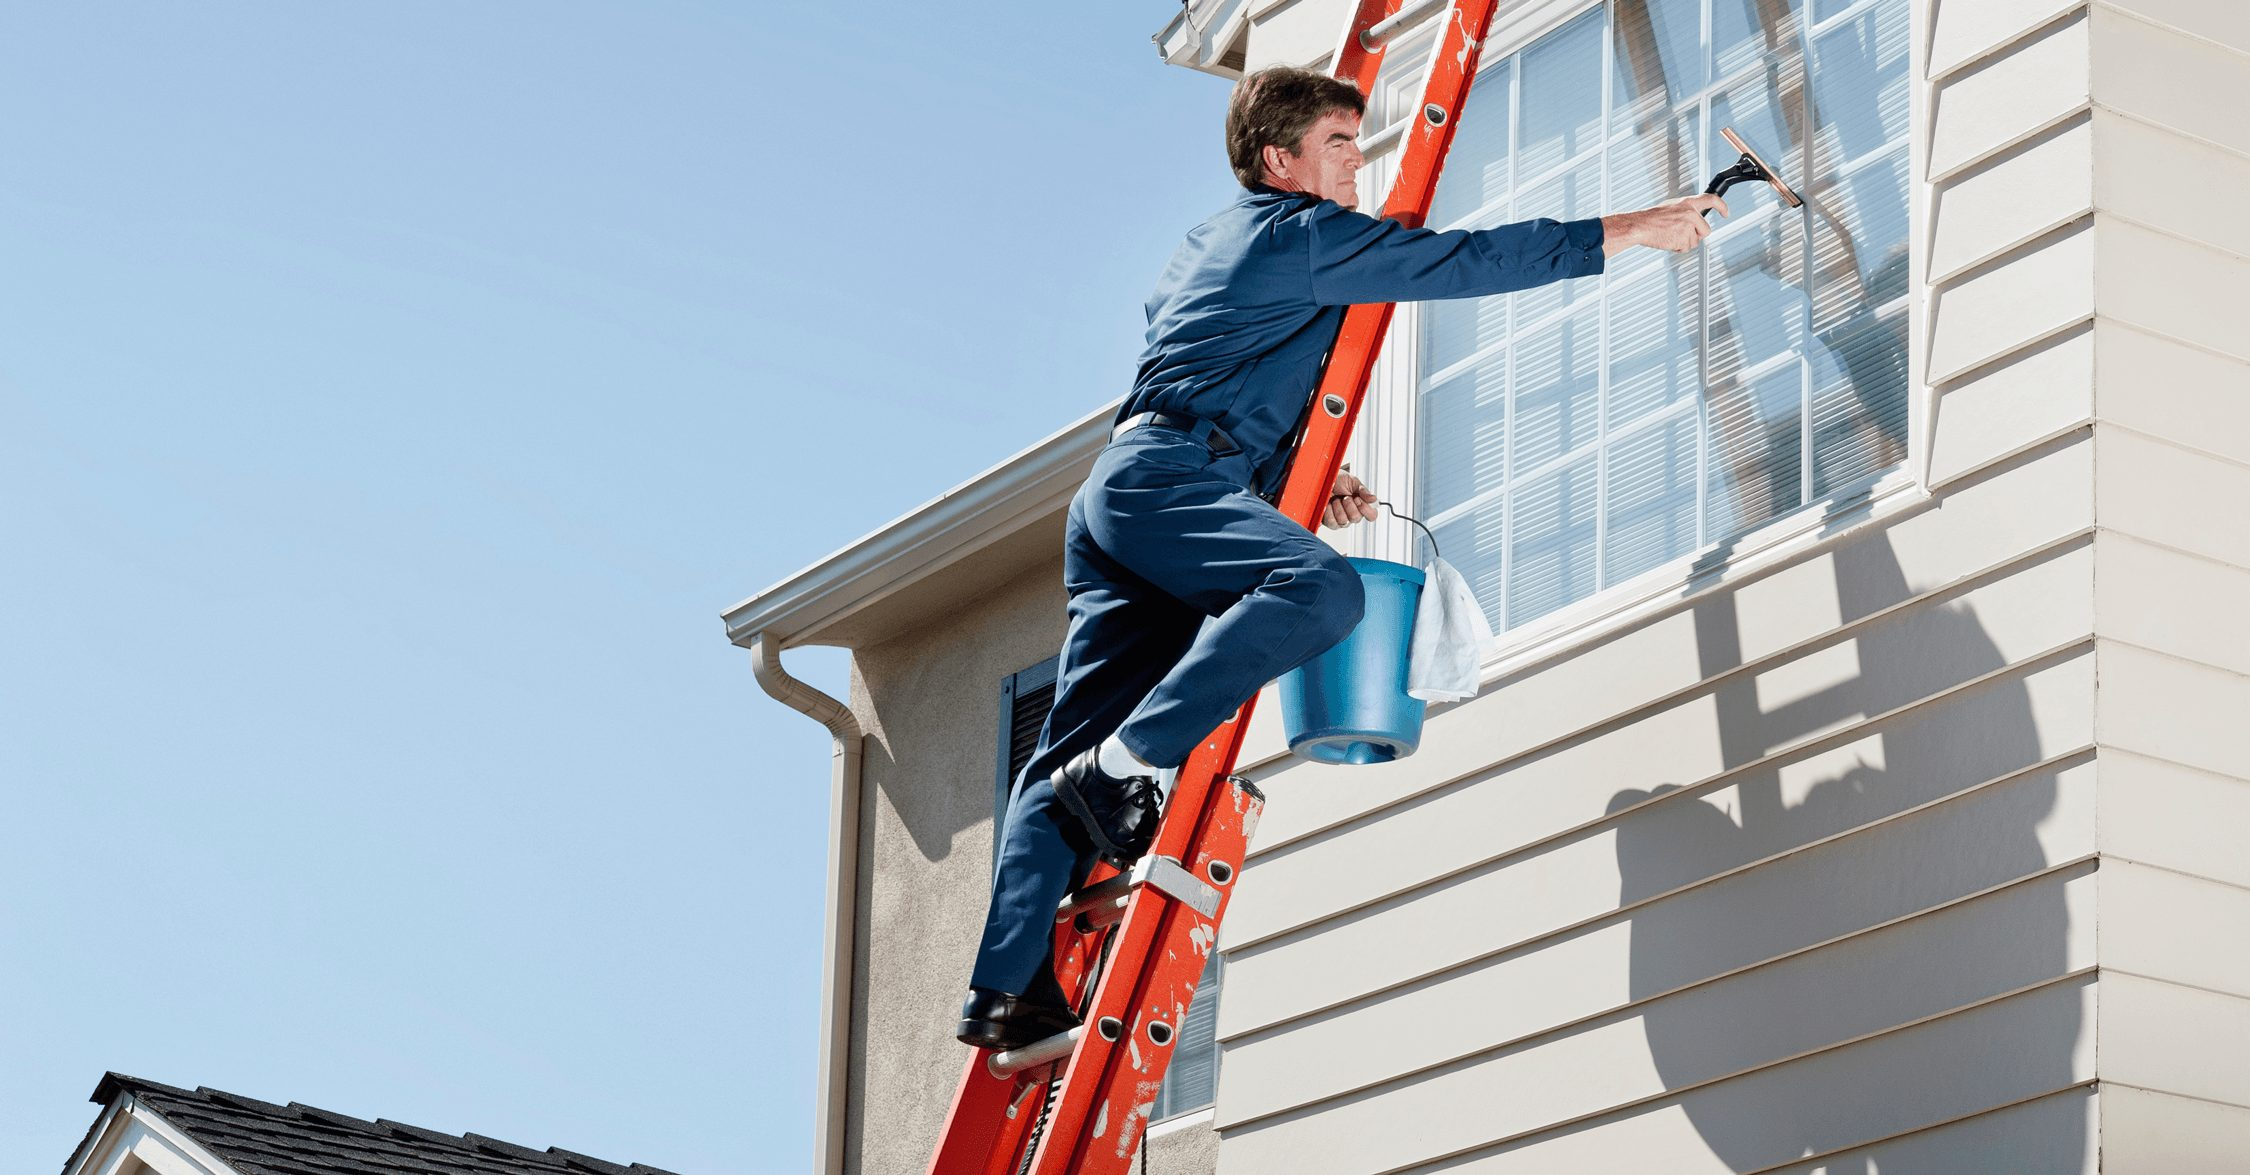 What to Look For When Hiring a Window Cleaner